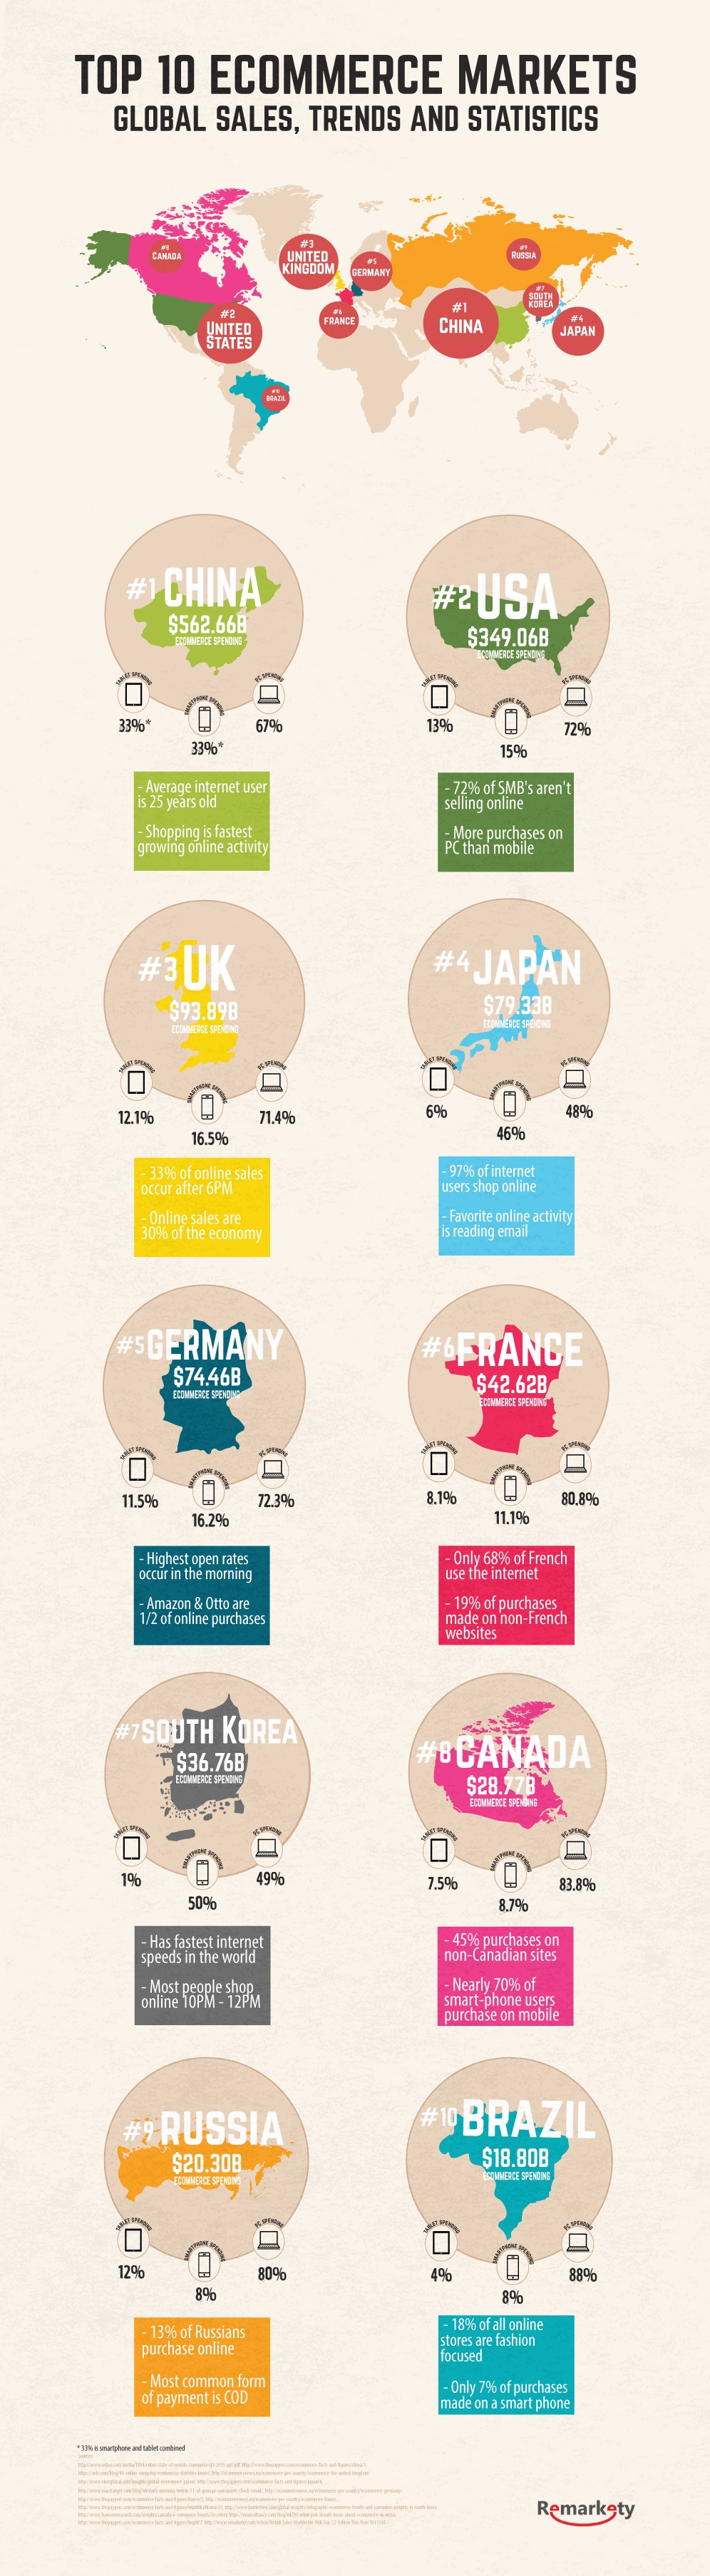 Top 10 e-commerce markets in the world